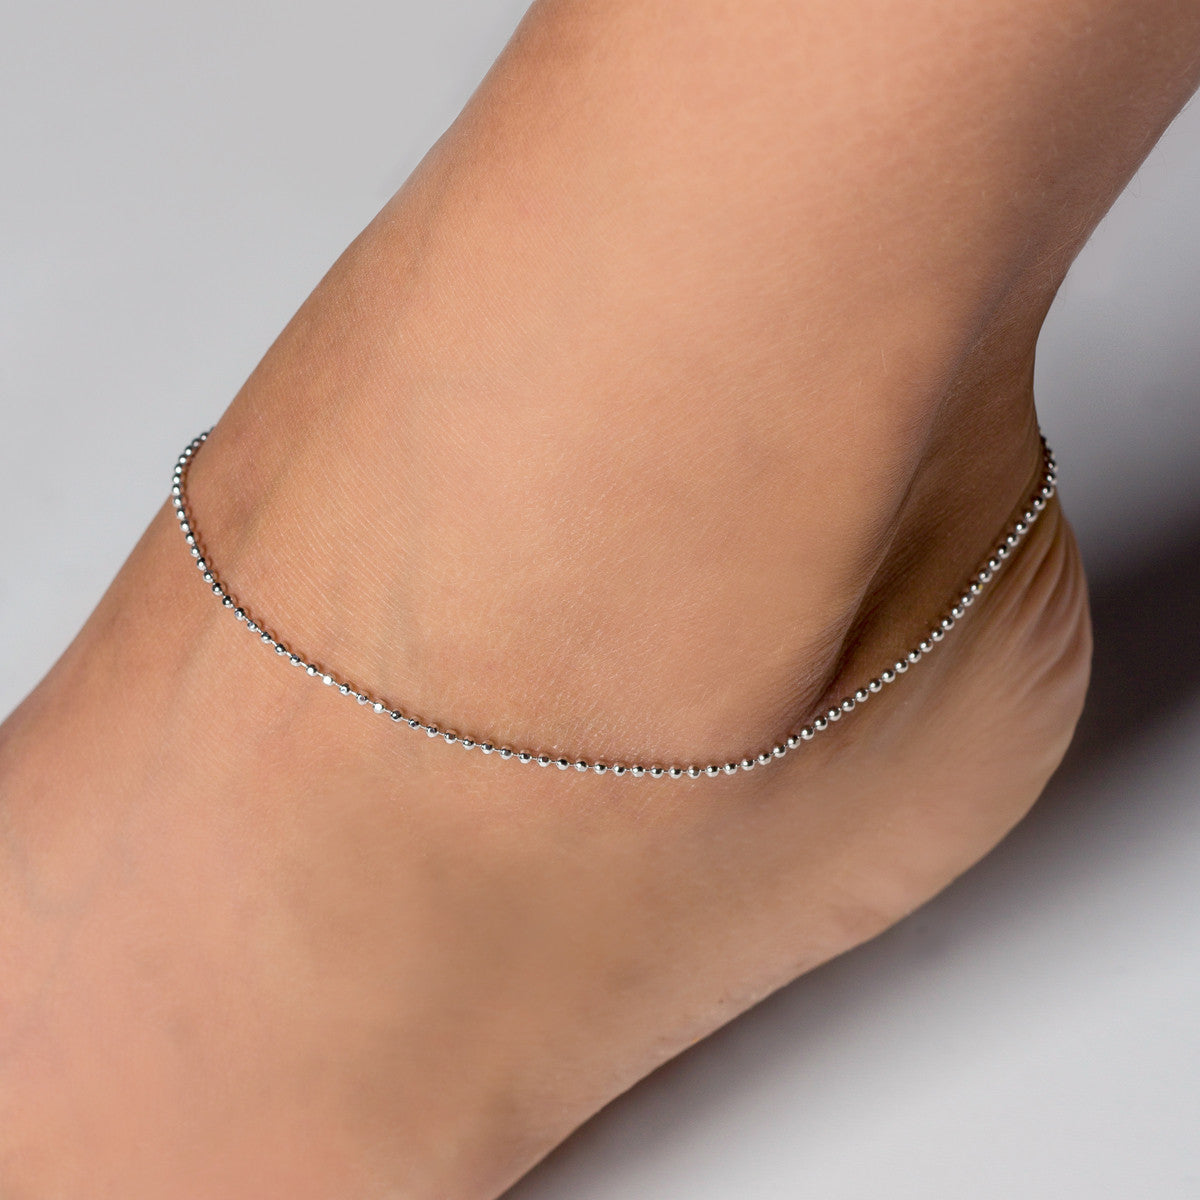 anklets price anklet factory fashion plated real with quality high bracelets store silver fine online ankle product jewelry bracelet antique